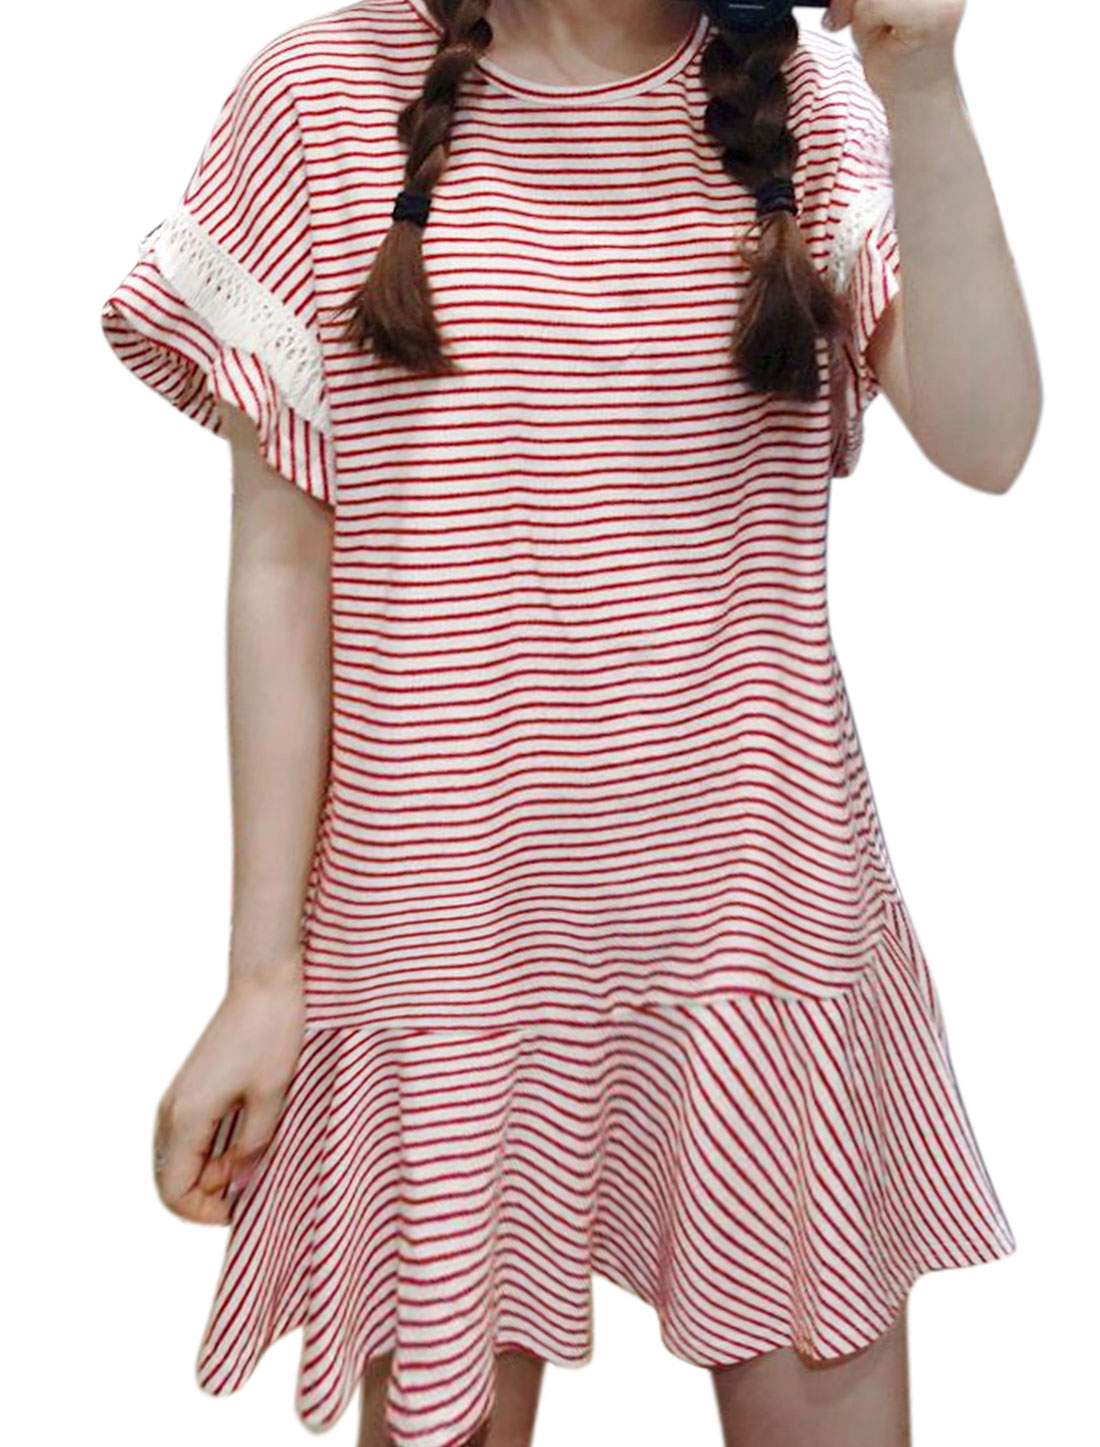 Women Tassels Decor Stripes Ruffled Hem Mini Dress Red XS